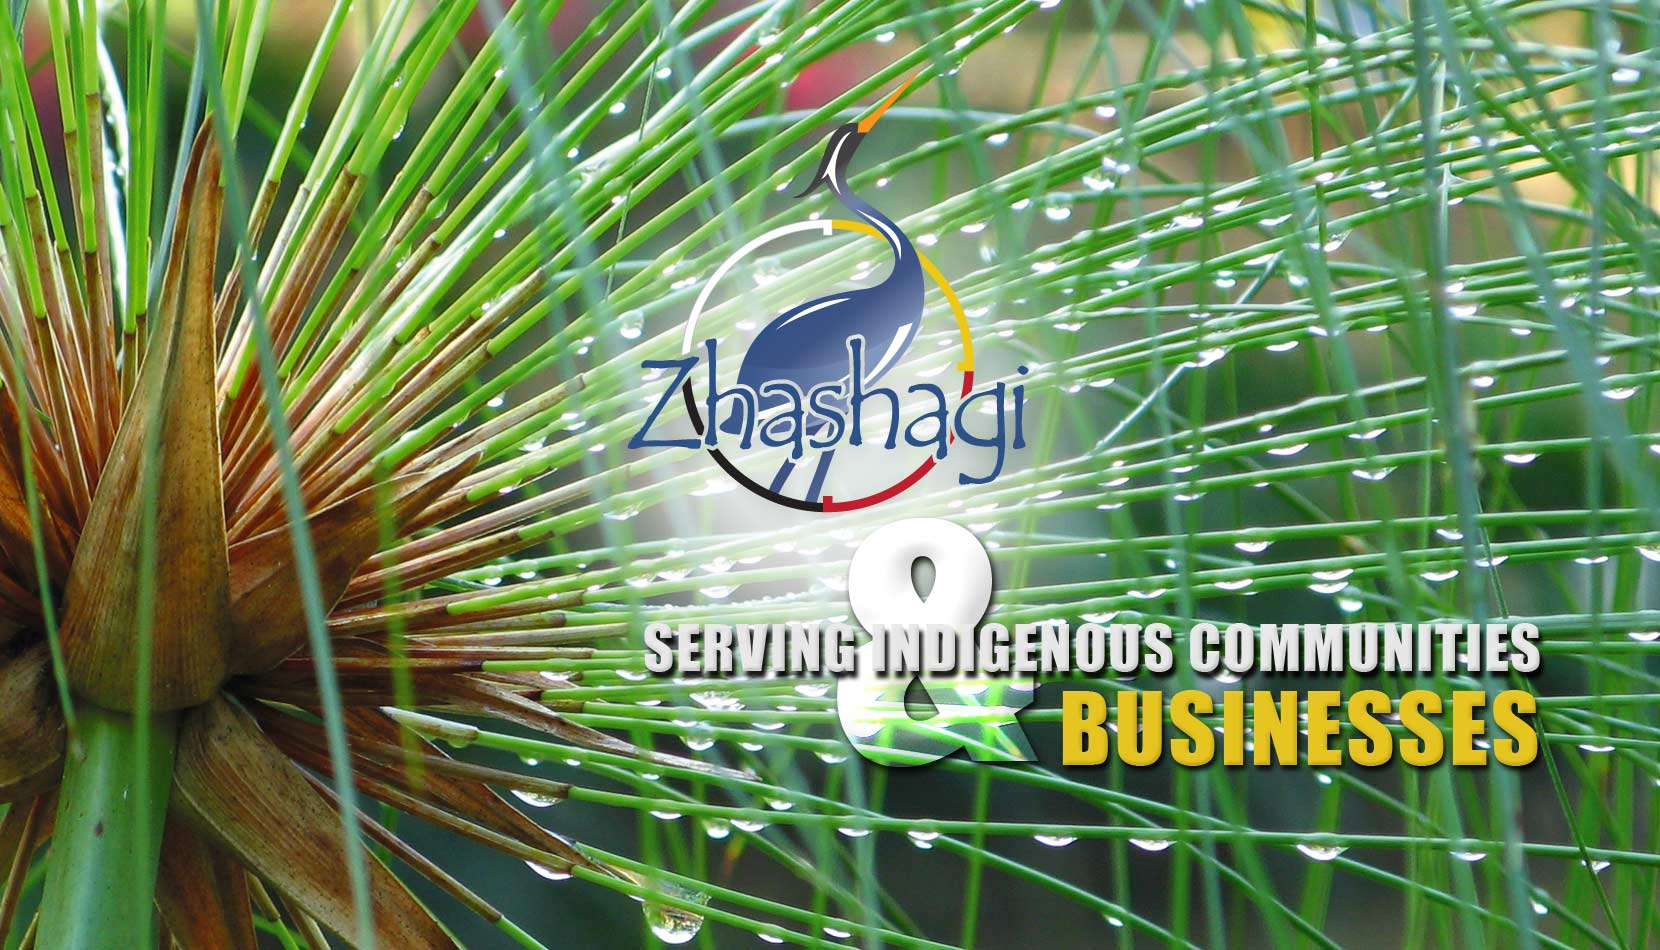 Zhashagi is Serving Indigenous Communities and Businesses